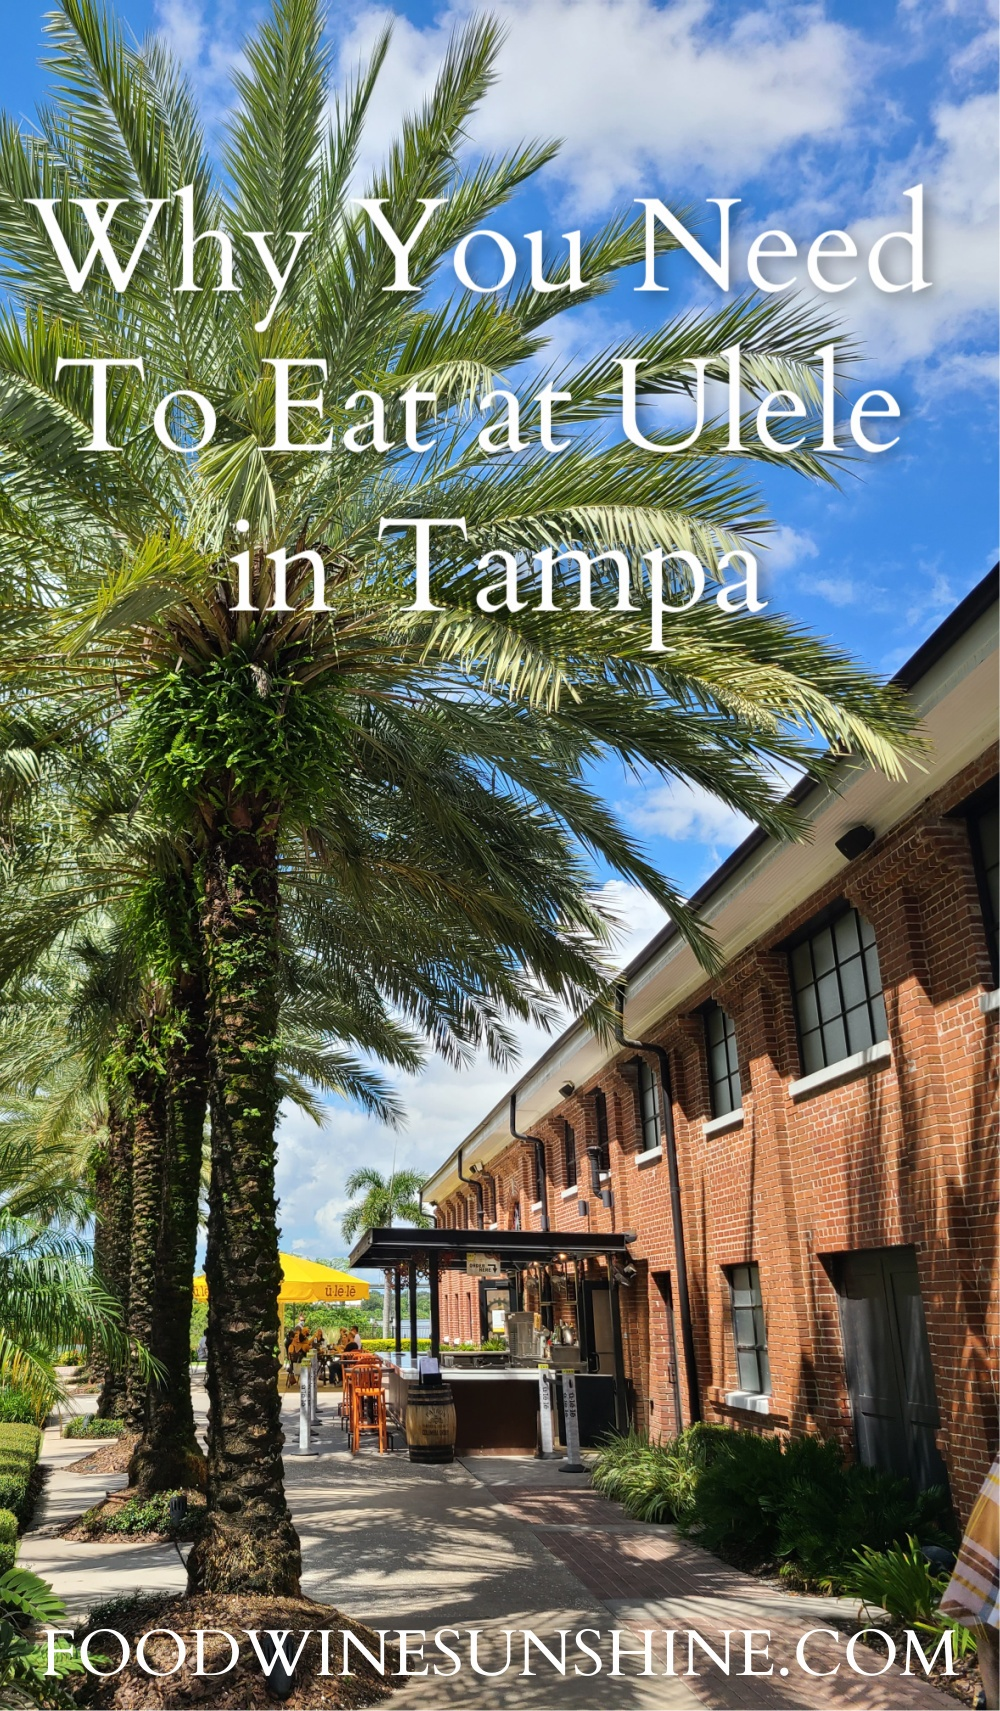 Why You Need to eat at ulele